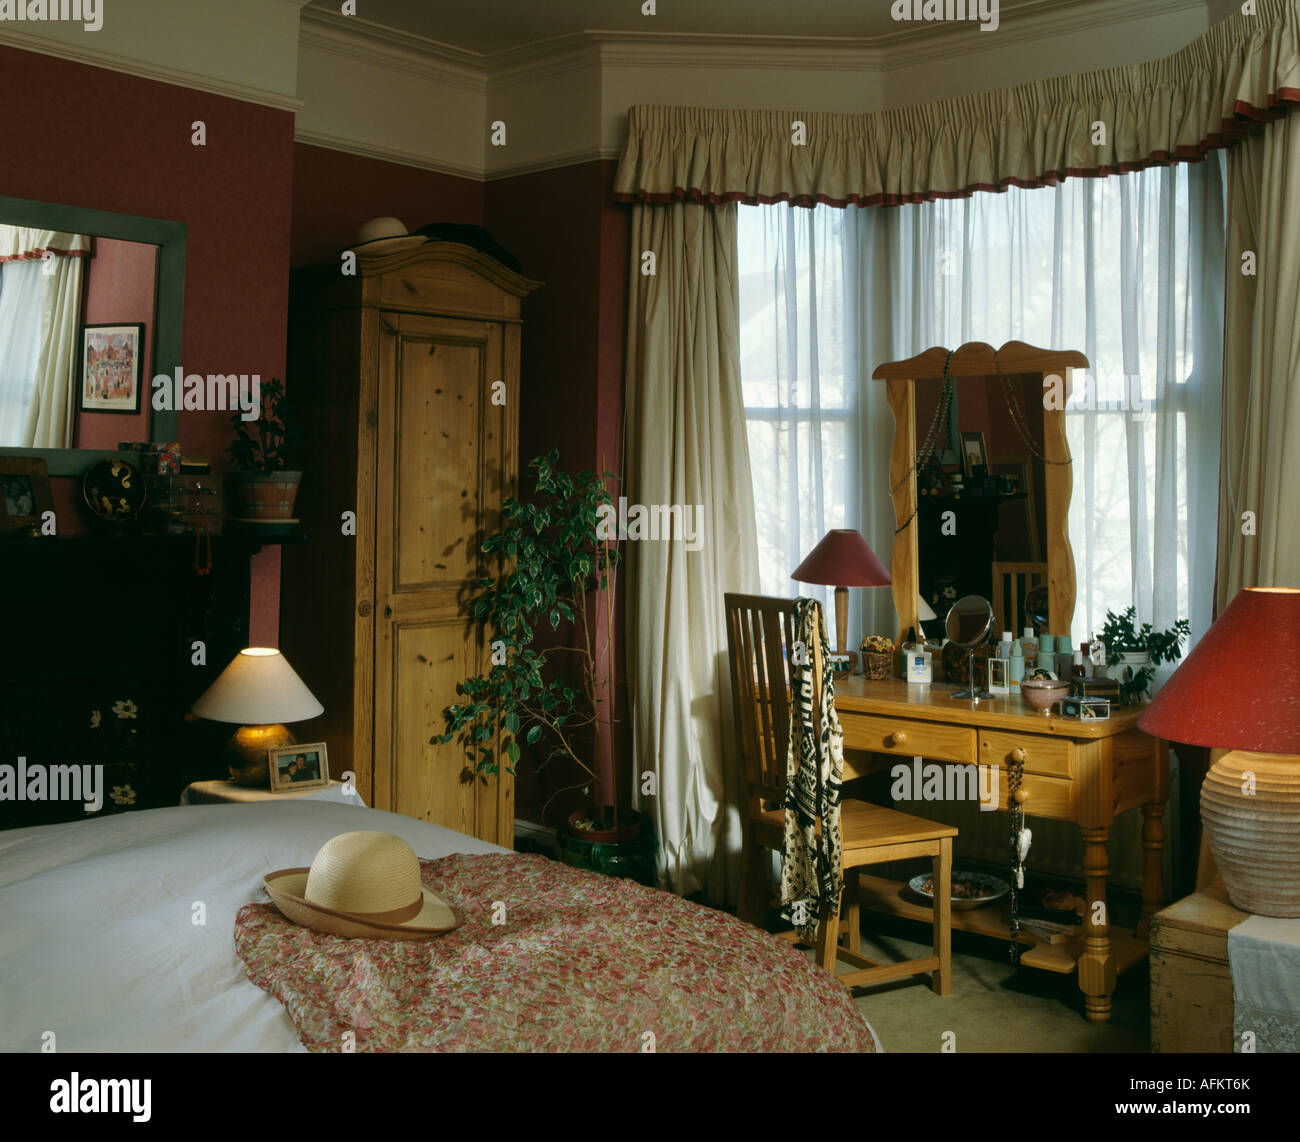 Narrow Pine Wardrobe And Pine Dressingtable In Red Nineties Bedroom